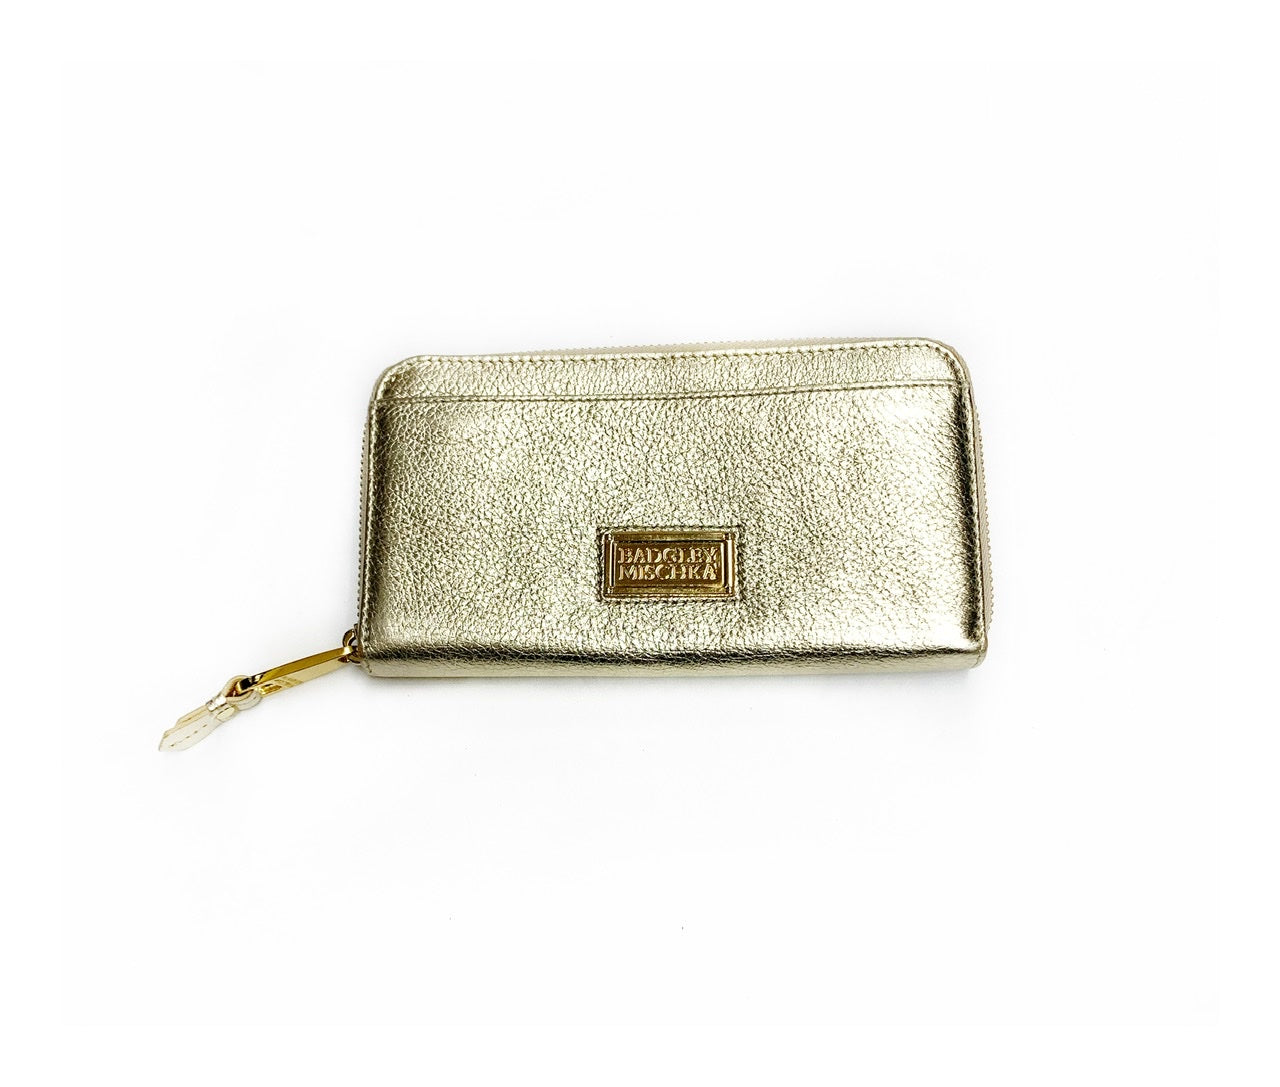 Primary Photo - BRAND: BADGLEY MISCHKA<BR>STYLE: WALLET<BR>COLOR: GOLD<BR>SIZE: LARGE<BR>SKU: 196-196112-47213